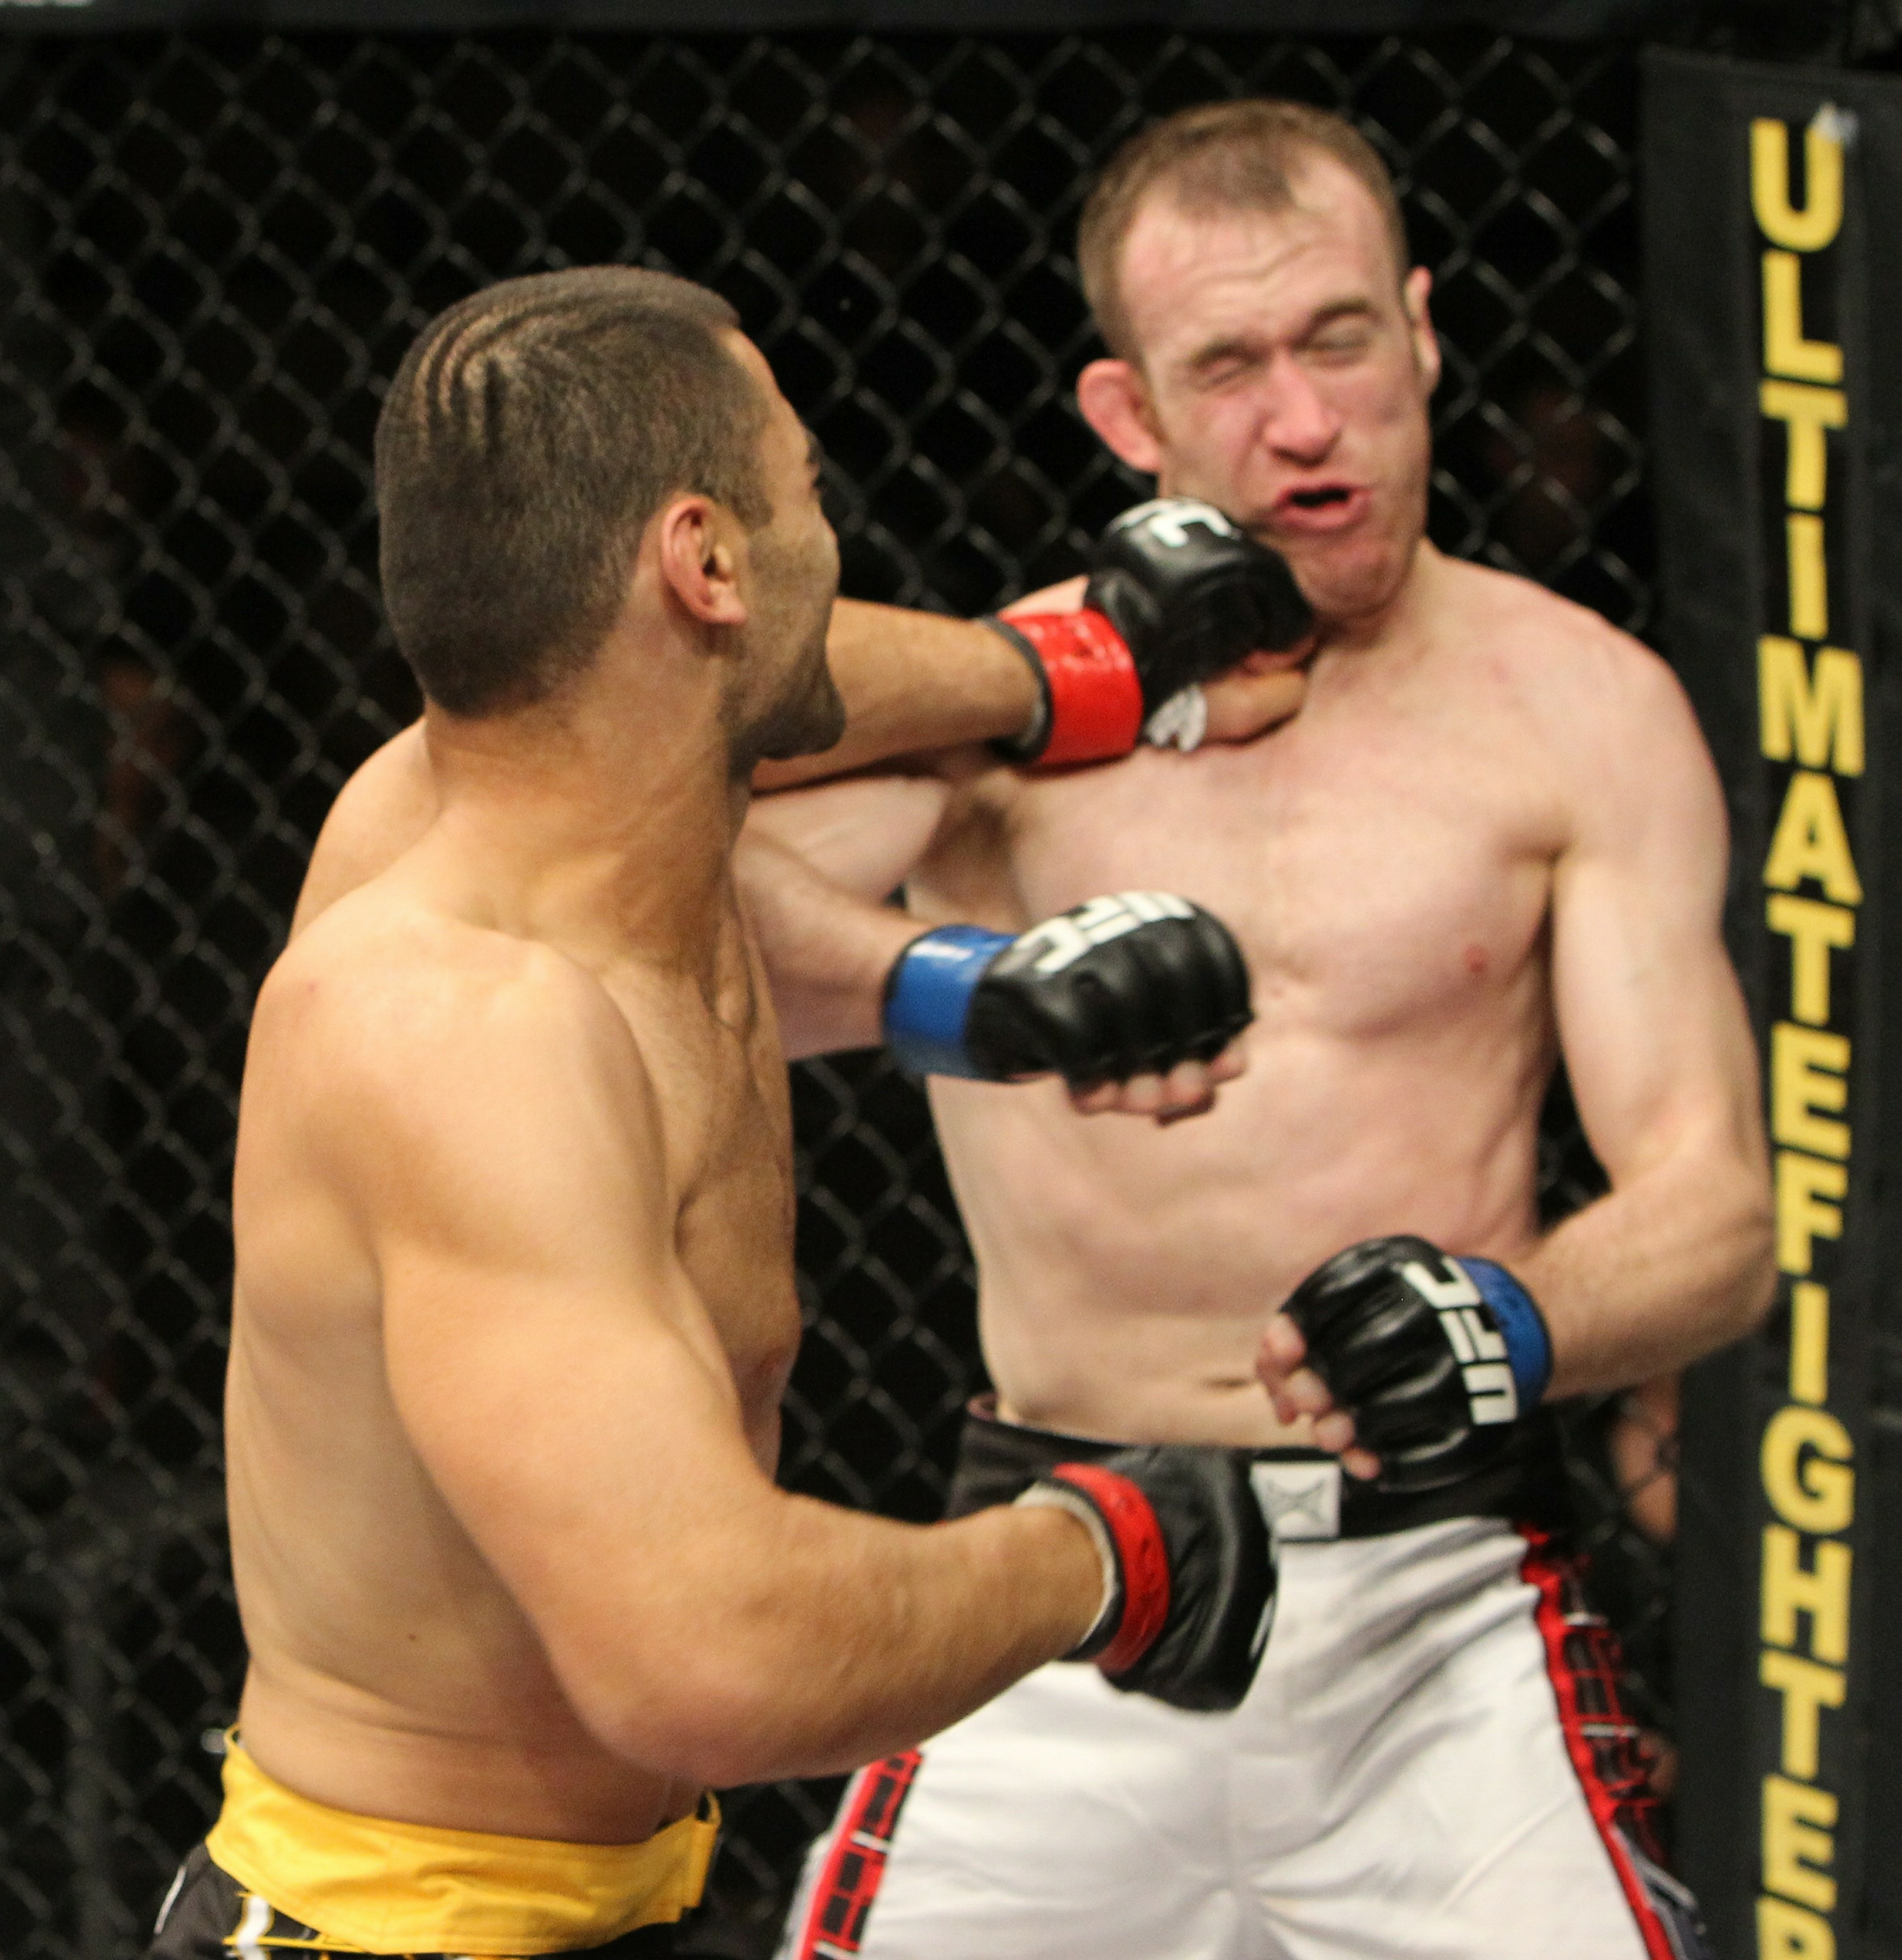 Kyle Watson vs Sako Chivitchian